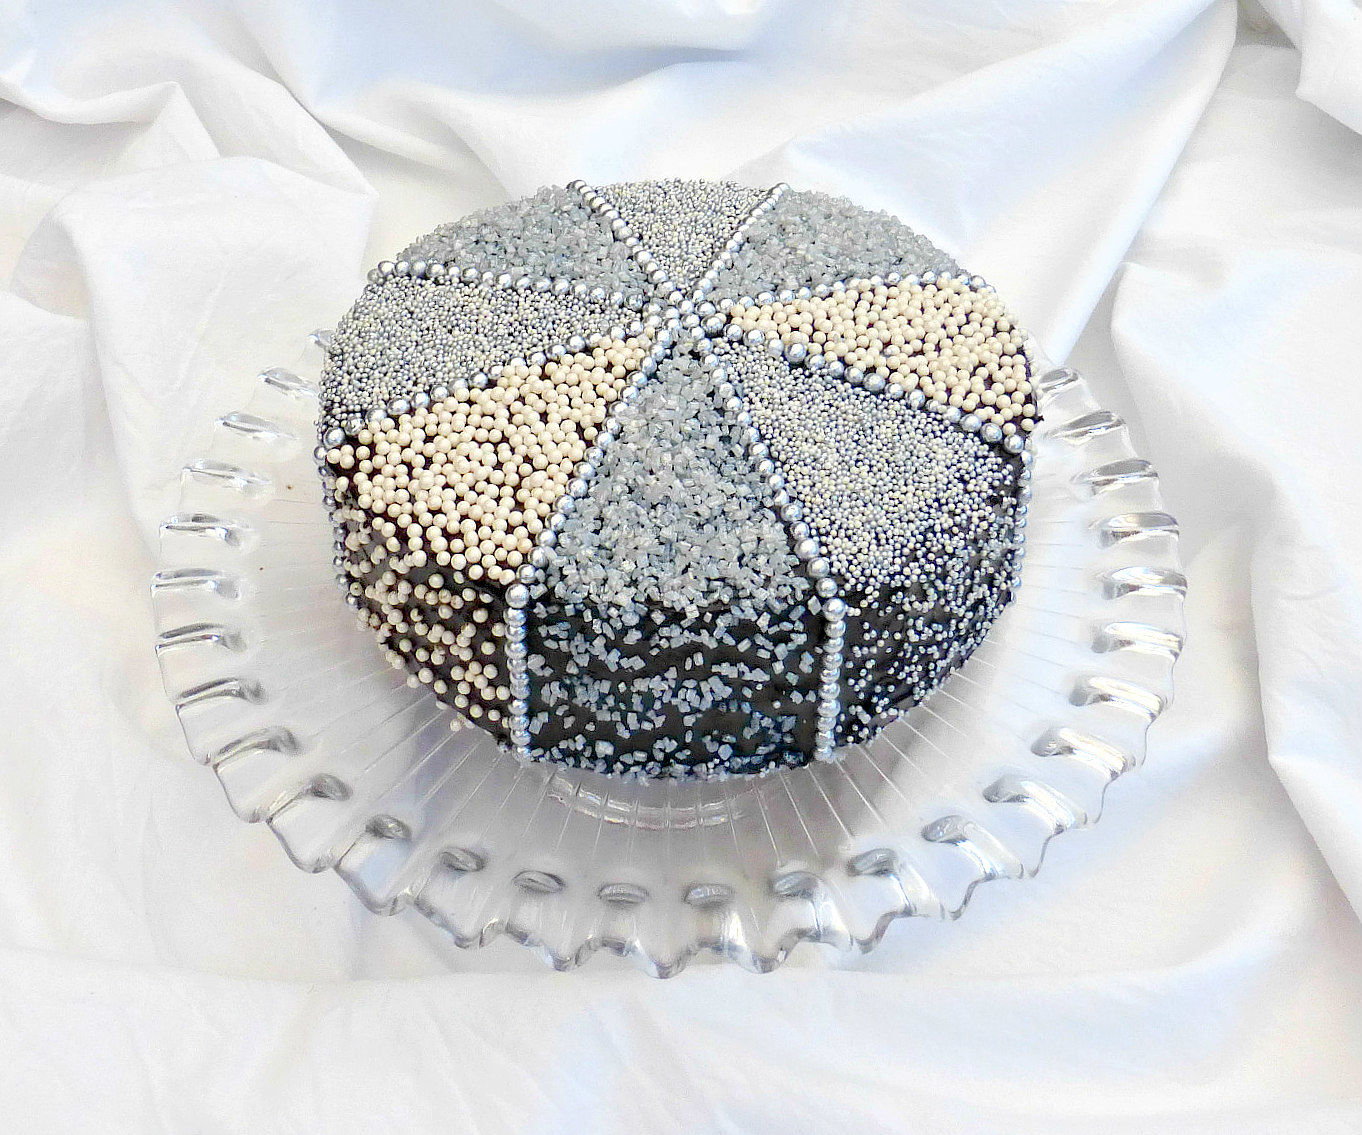 Stunning Silvery Decorated Cake